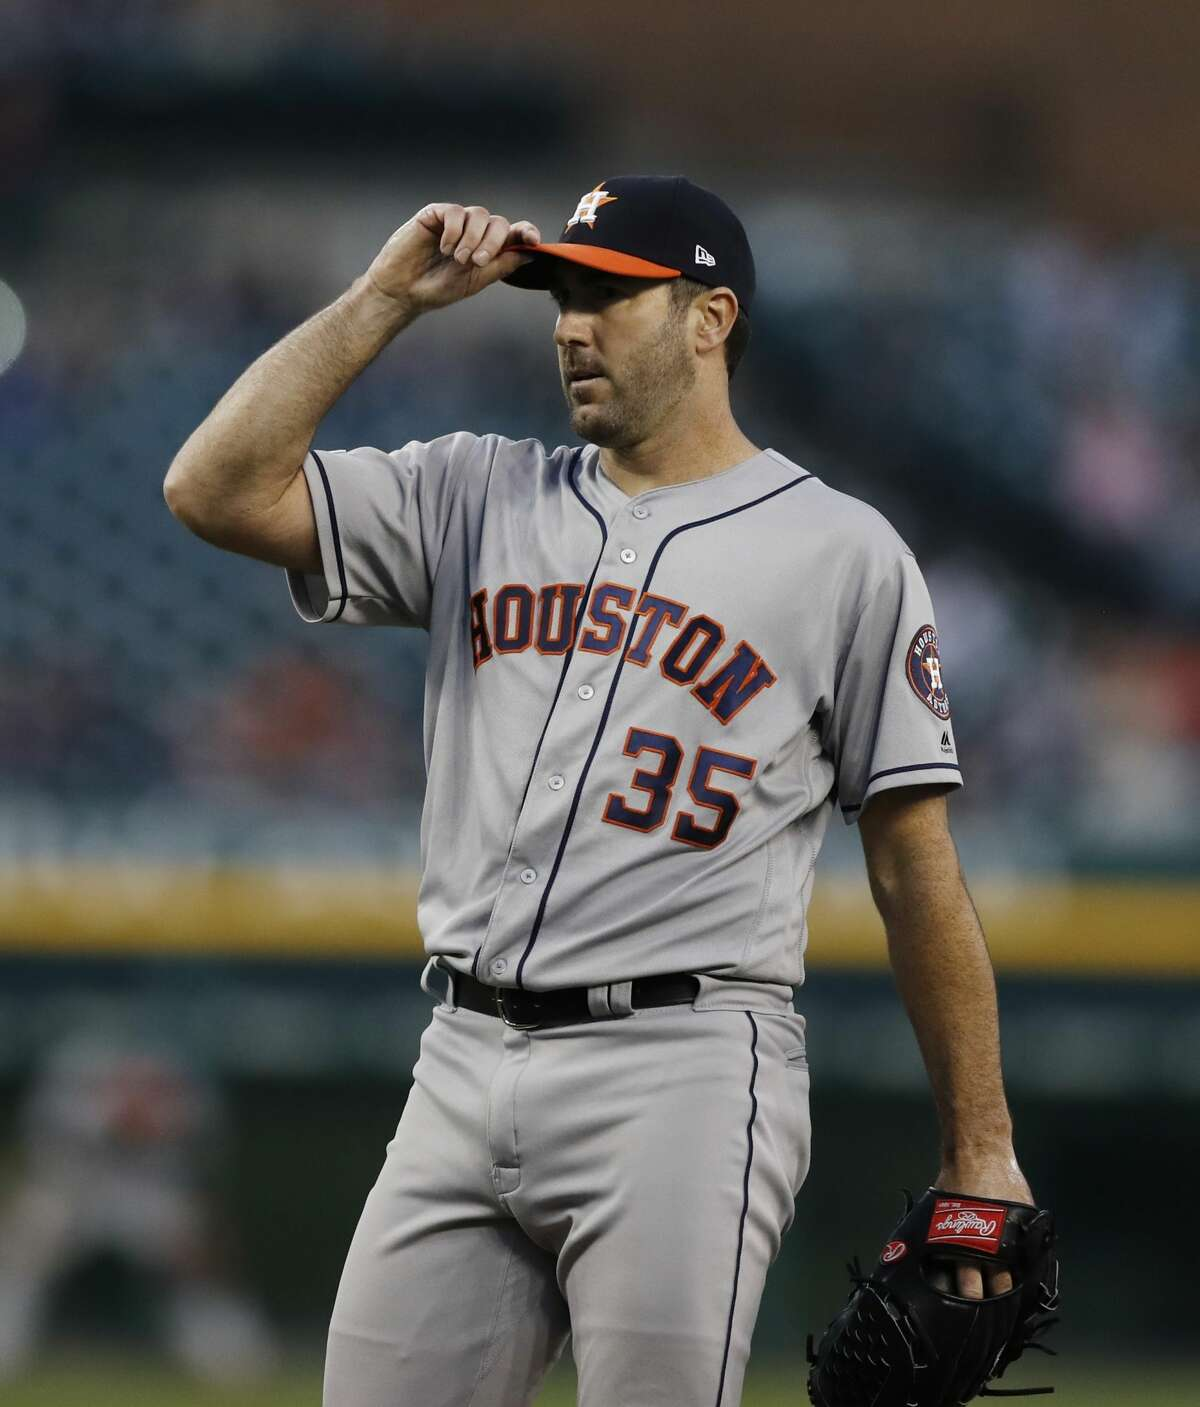 Houston Astros starting pitcher Justin Verlander adjusts his cap after loading the bases during the fifth inning of a baseball game against the Detroit Tigers, Wednesday, May 15, 2019, in Detroit. (AP Photo/Carlos Osorio)